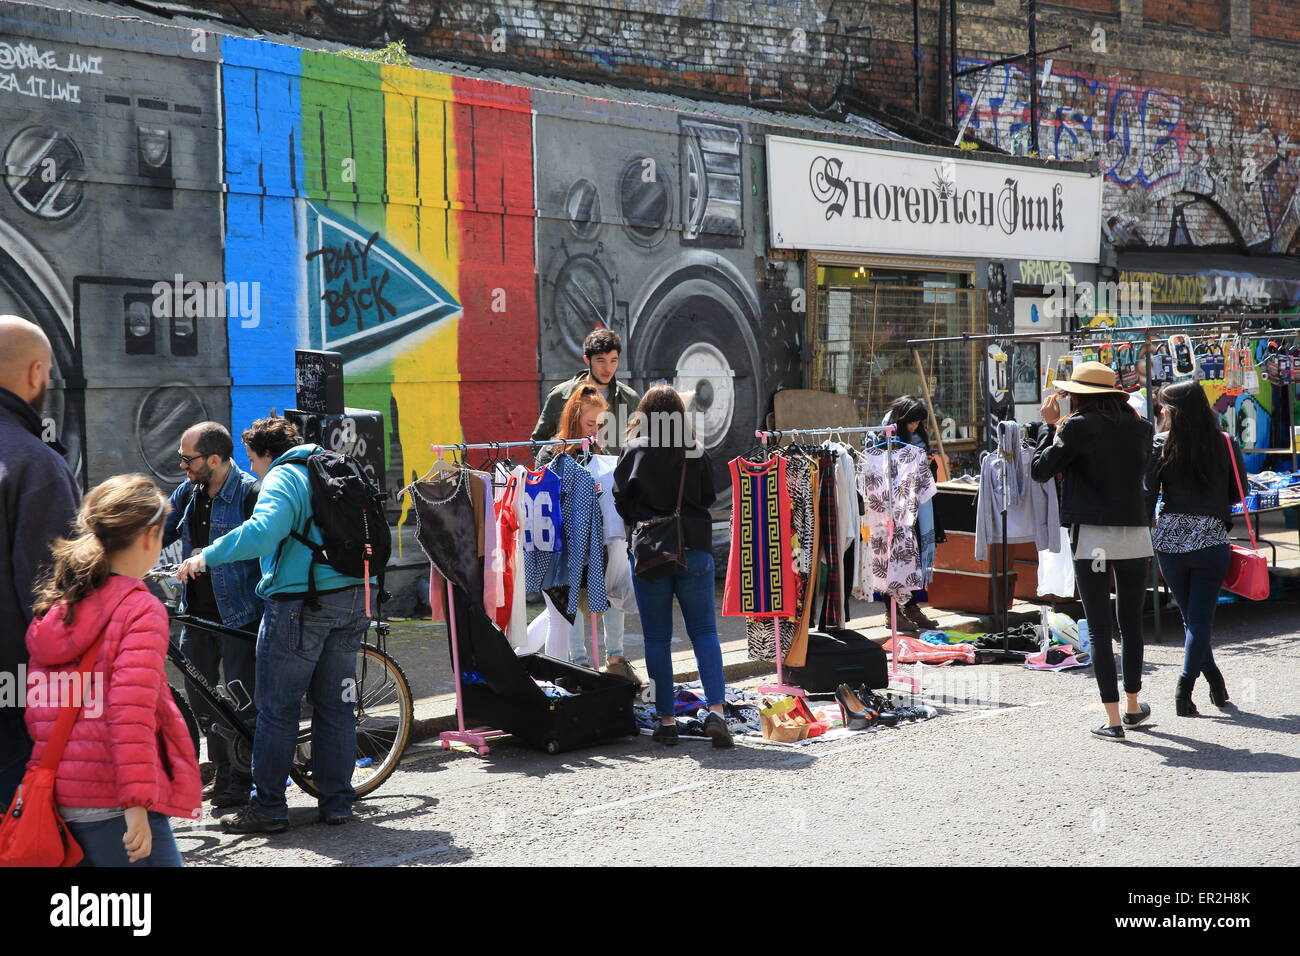 Colourful market stalls in Shoreditch, on Sclater Street, in east London, England, UK - Stock Image